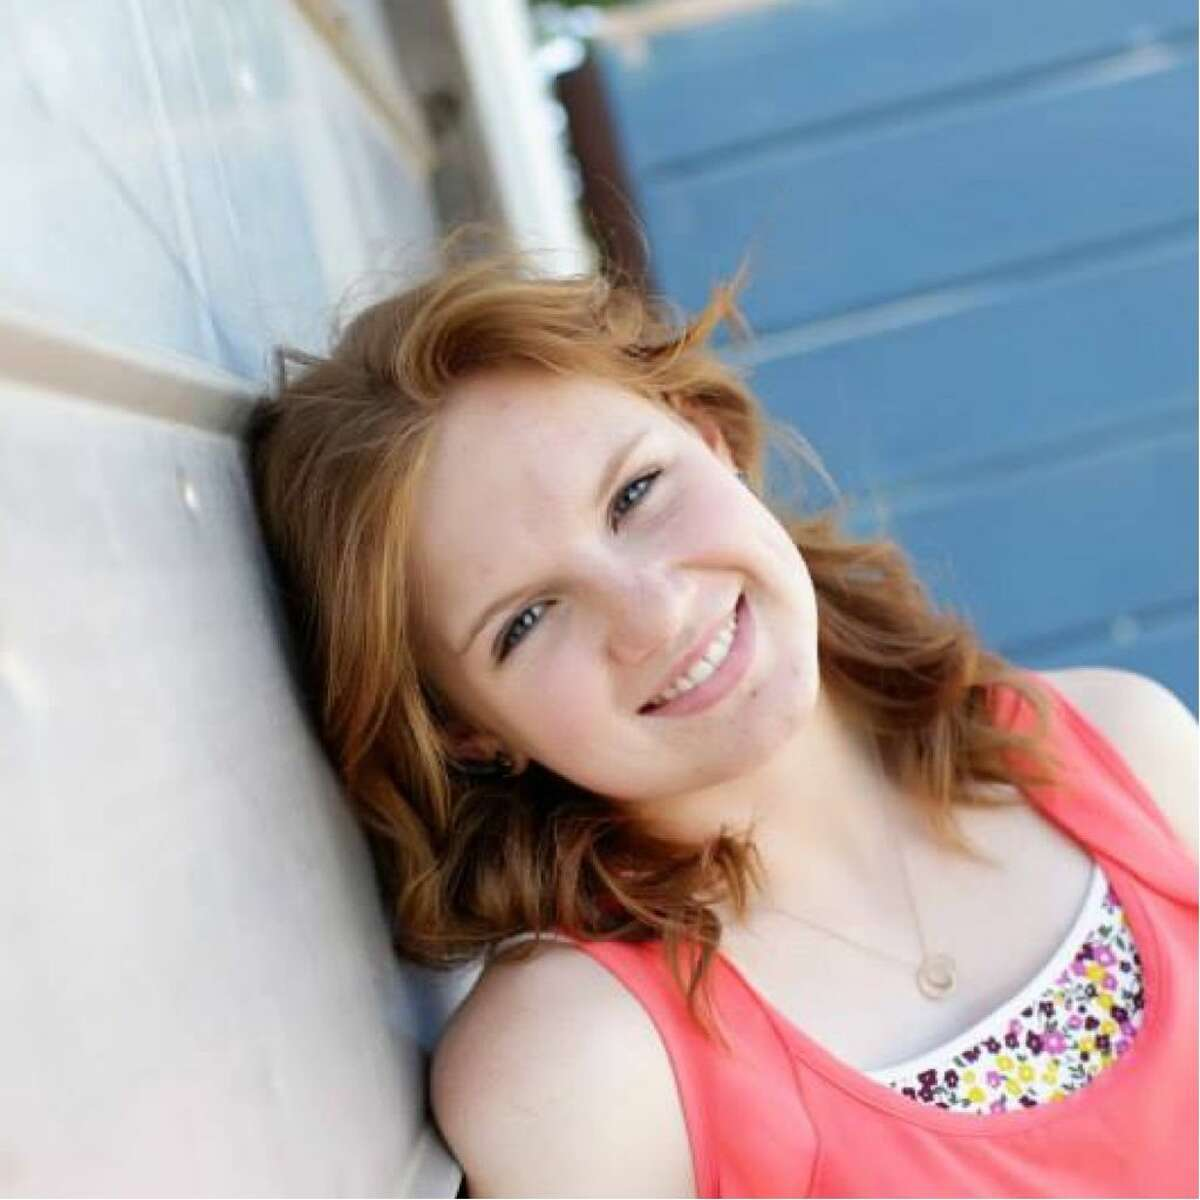 Molly Meeker is a 2014 graduate of Midland Christian School. She is a freshman at Baylor University majoring in journalism and wrote this column for a reporting class.